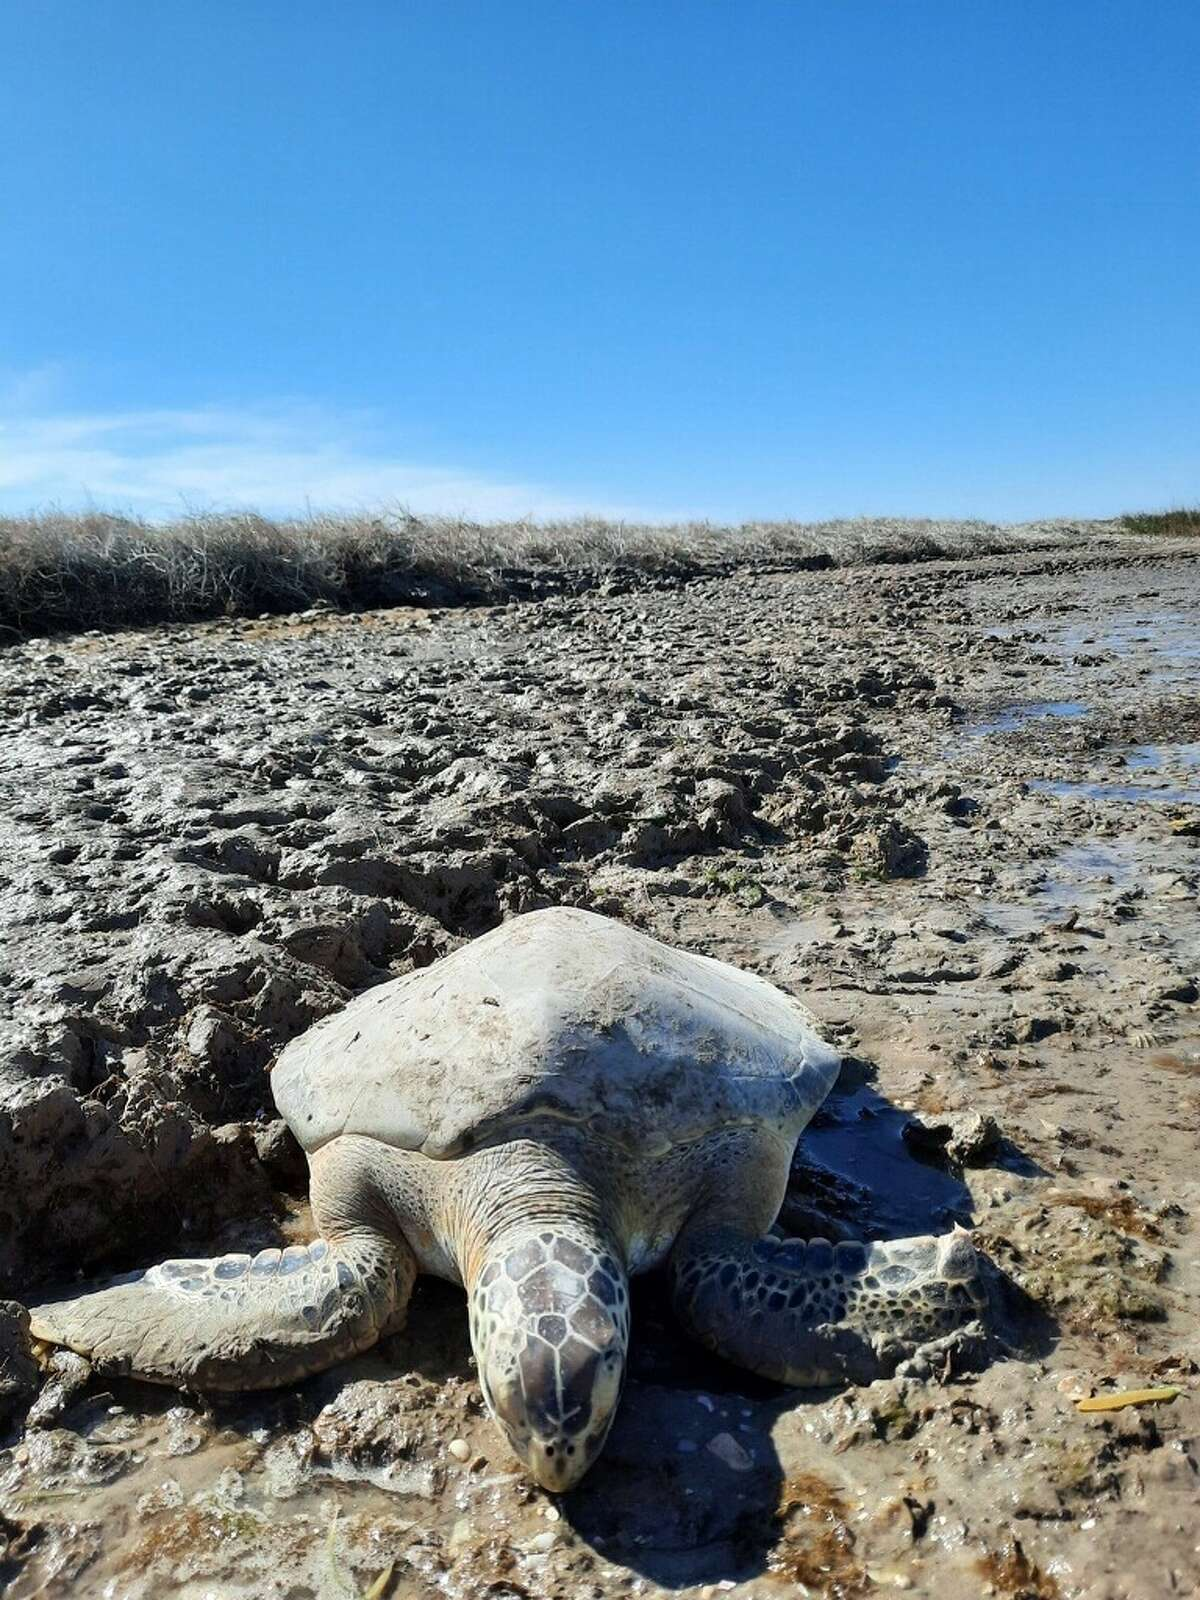 On Wednesday, staff from the Texas Parks and Wildlife Department rescued several cold-stunned sea turtles found in Matagorda Bay, according to a Facebook post from Coastal Fisheries - Texas Parks and Wildlife. The bay is about 80 miles northeast of Corpus Christi.